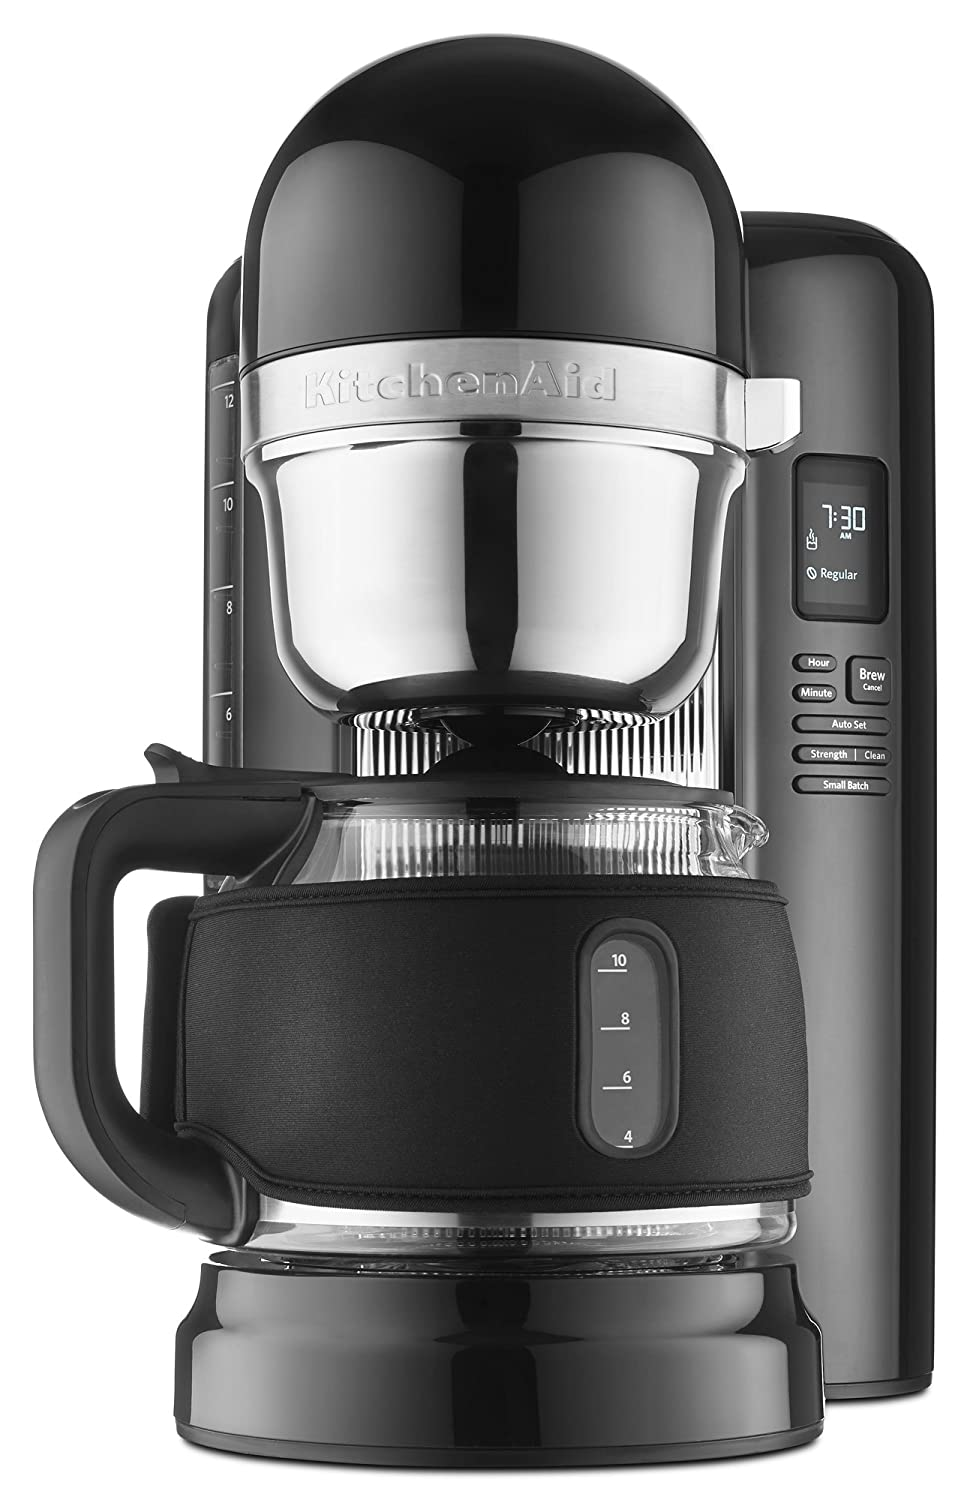 KitchenAid KCMB1204BOB 12-Cup Coffee Maker with One Touch Brewing with Black Thermal Sleeve - Onyx Black